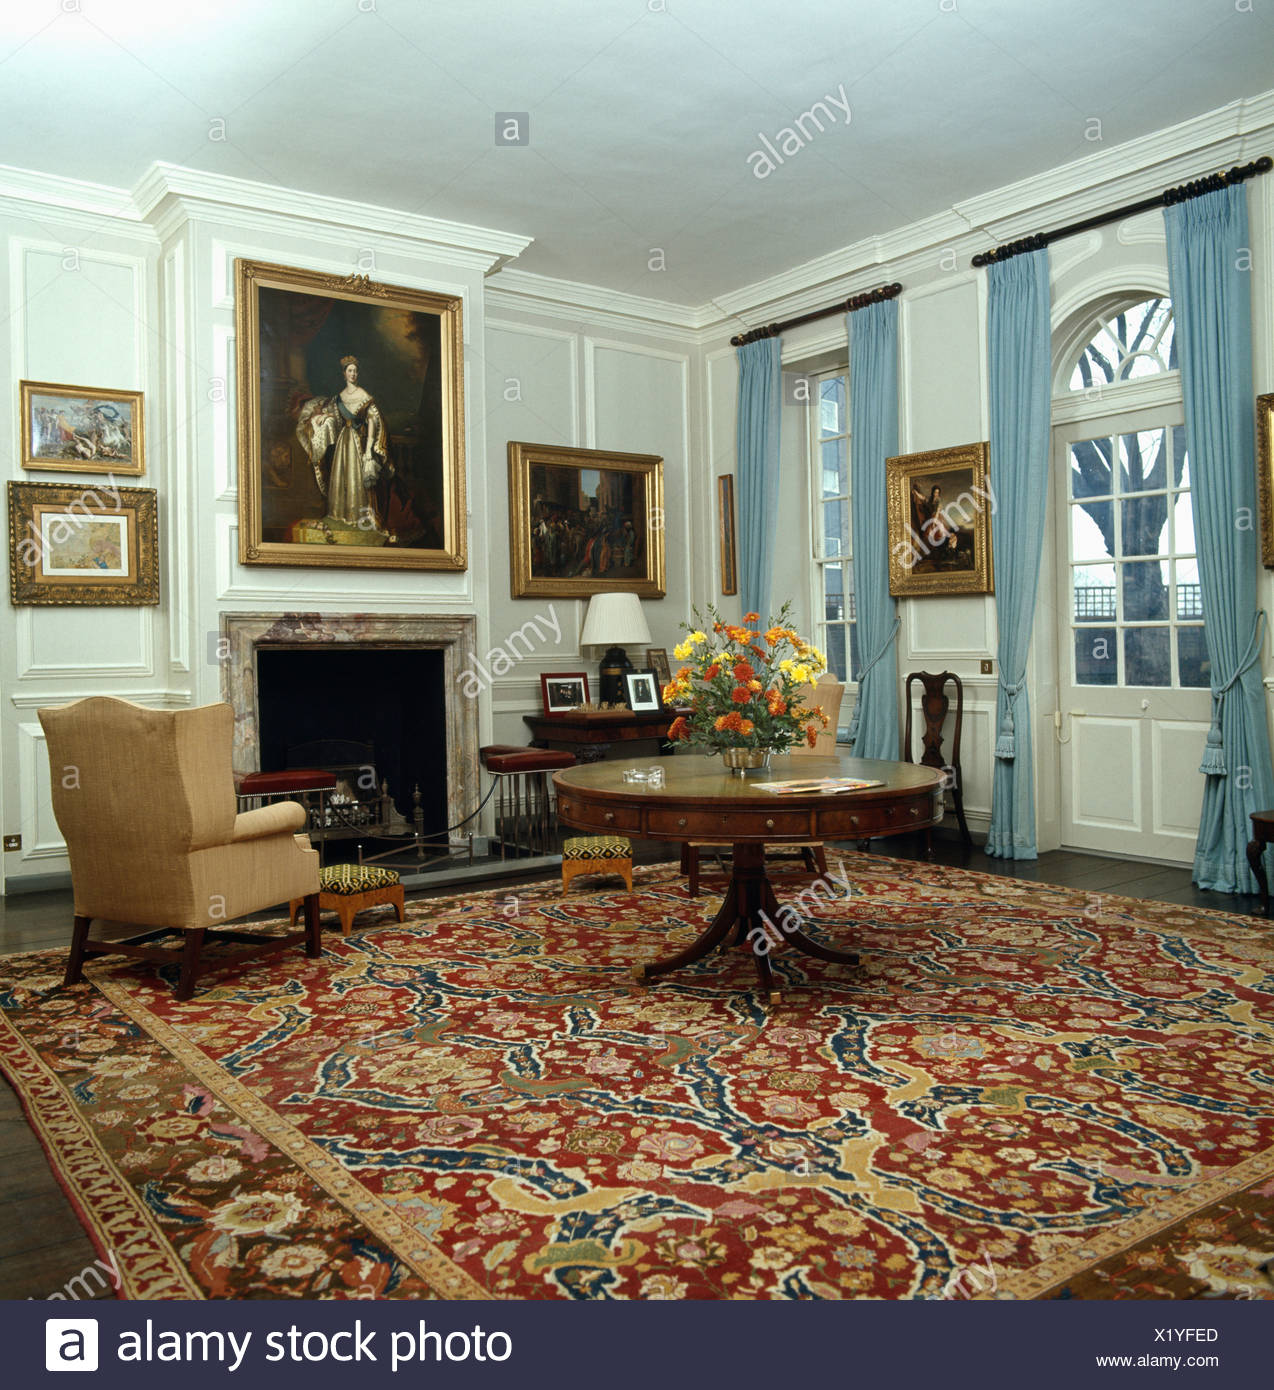 Circular Table On Patterned Red Carpet In Livingroom With